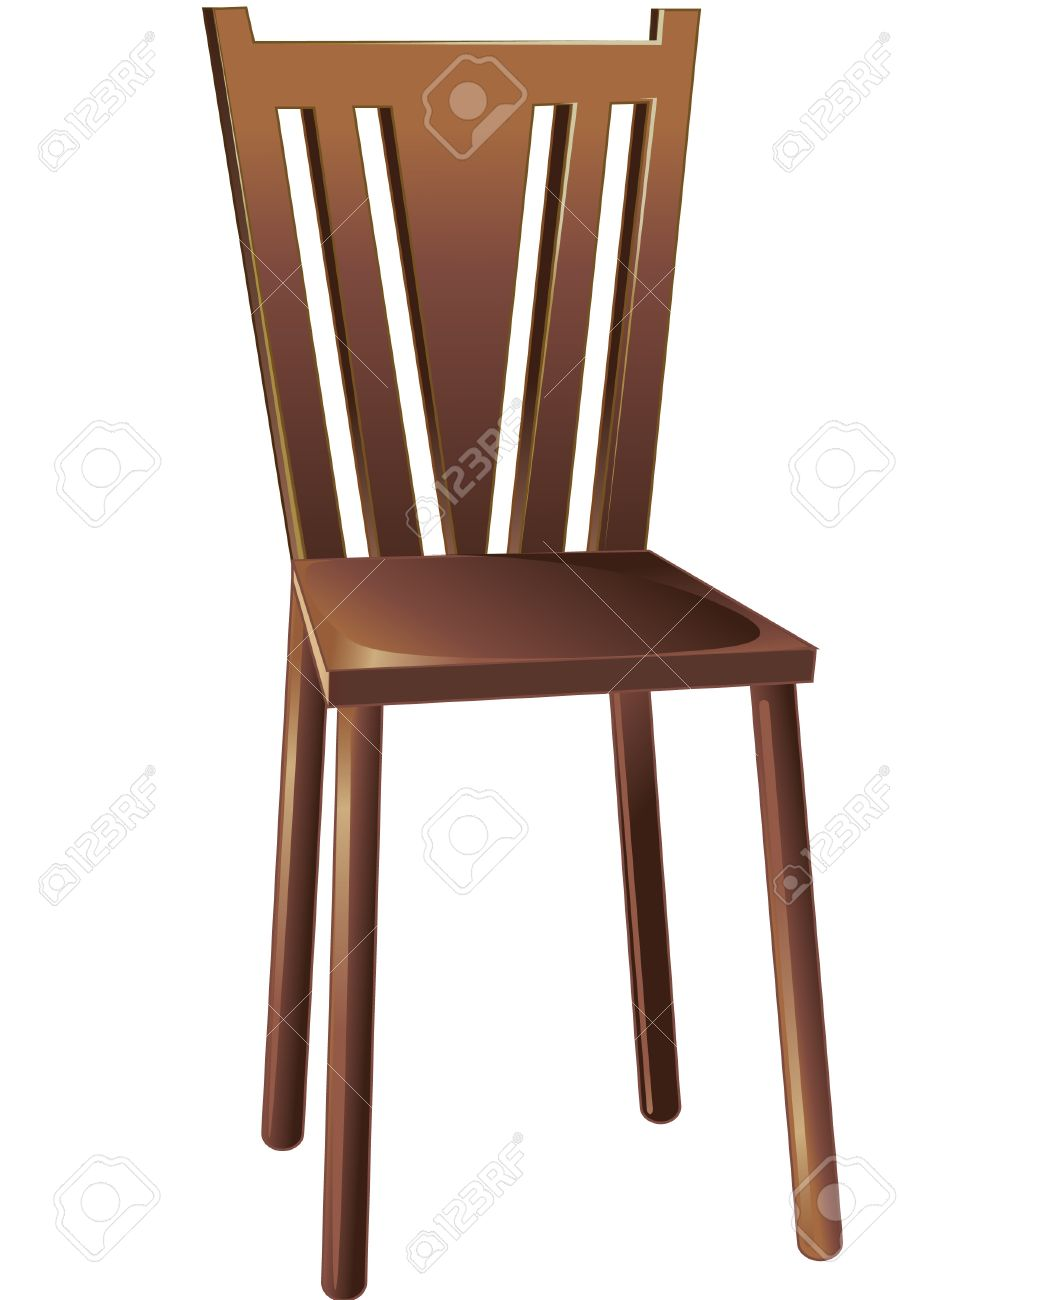 16822 Wooden Chair Stock Vector Illustration And Royalty Free